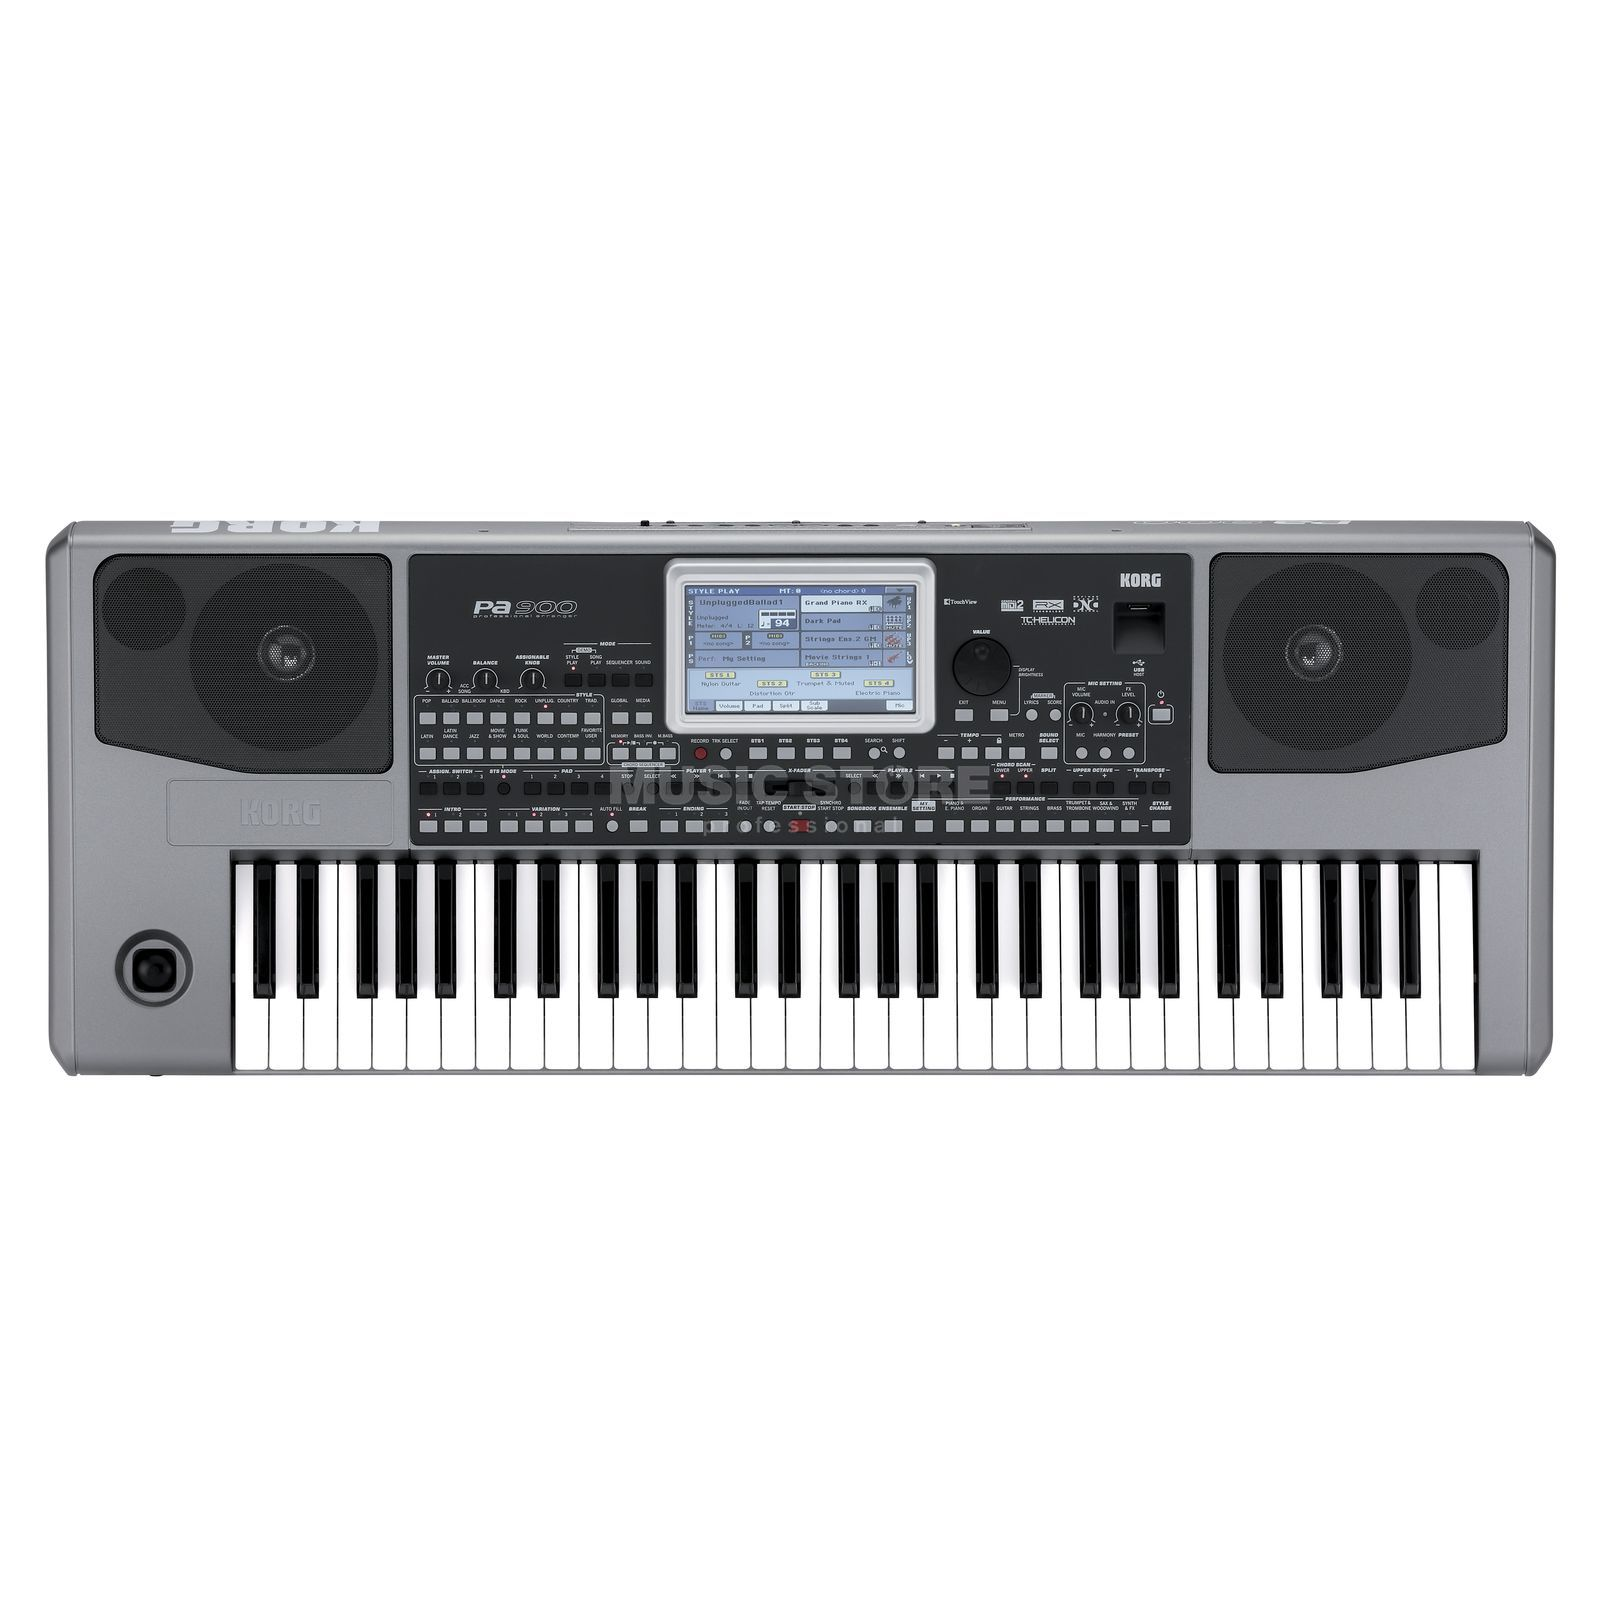 Korg PA900 Entertainer Keyboard Produktbild